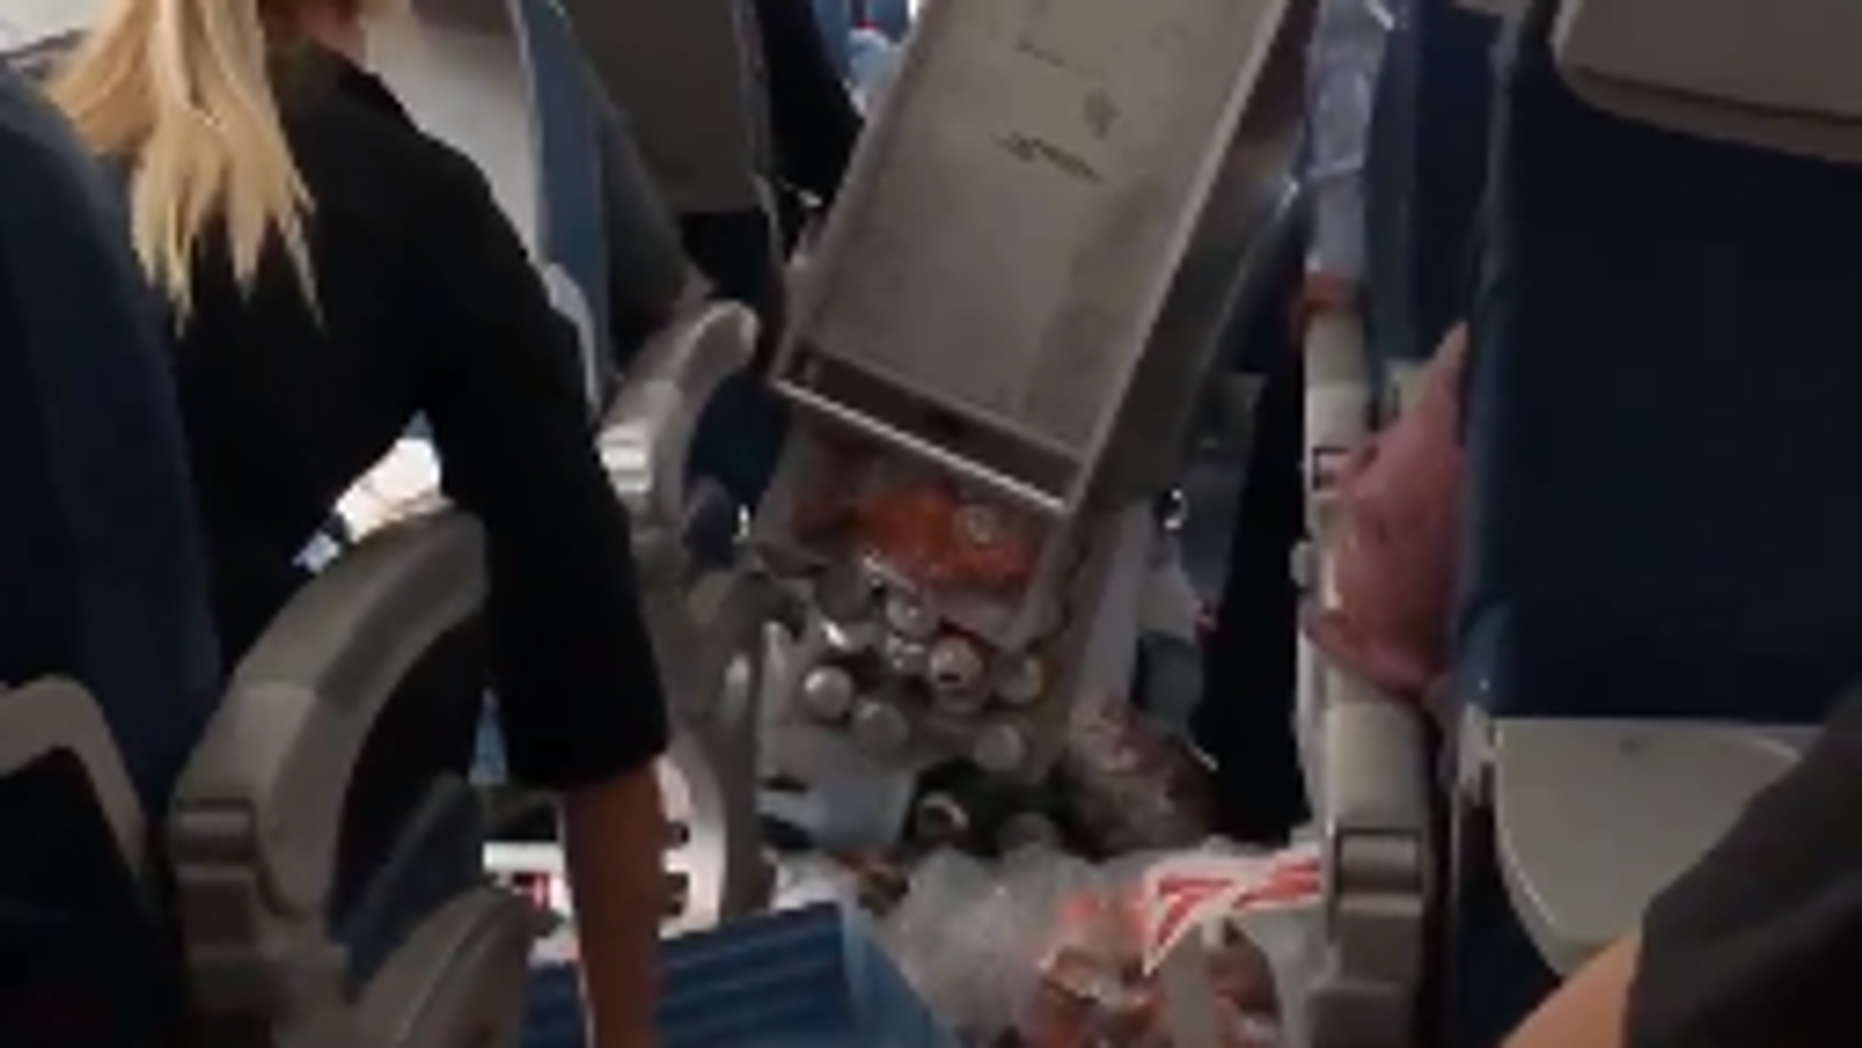 Video from a passengers phone shows the chaotic onboard the flight 5763.